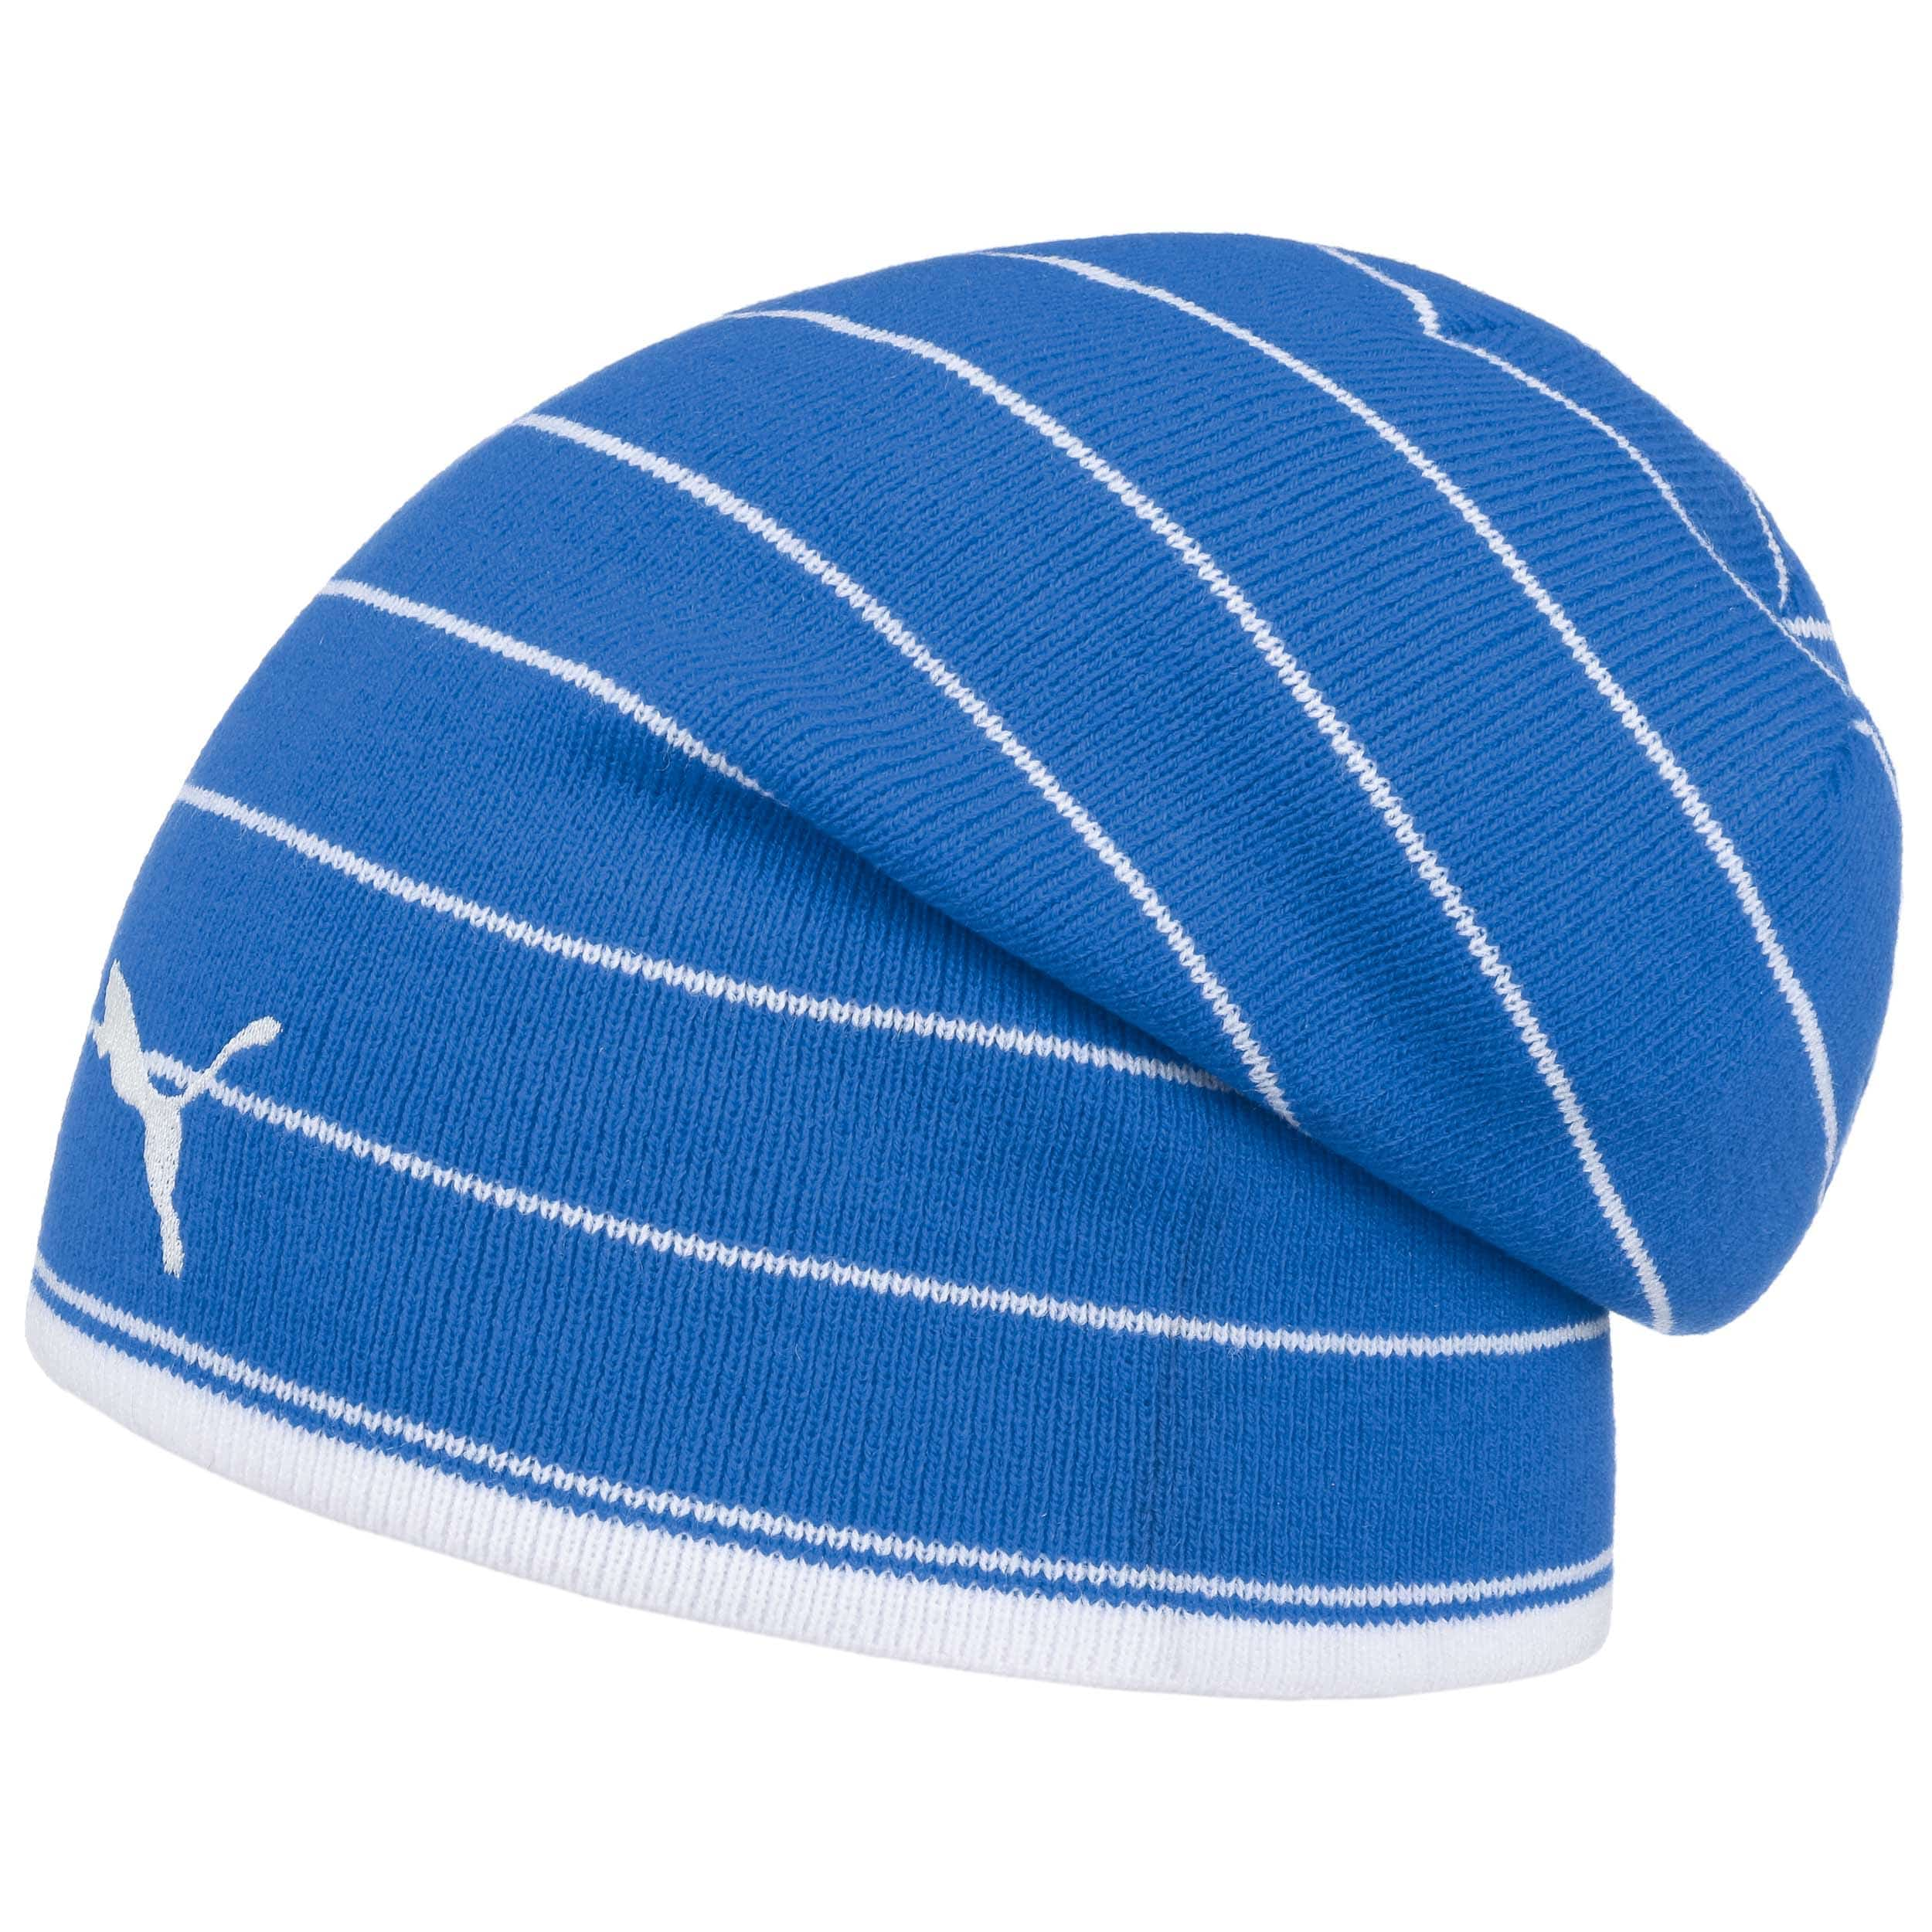 ... online totalsports 801ca 3ff7f where to buy stripes long beanie by puma  3 469b8 26516 ... 6102df3dd07